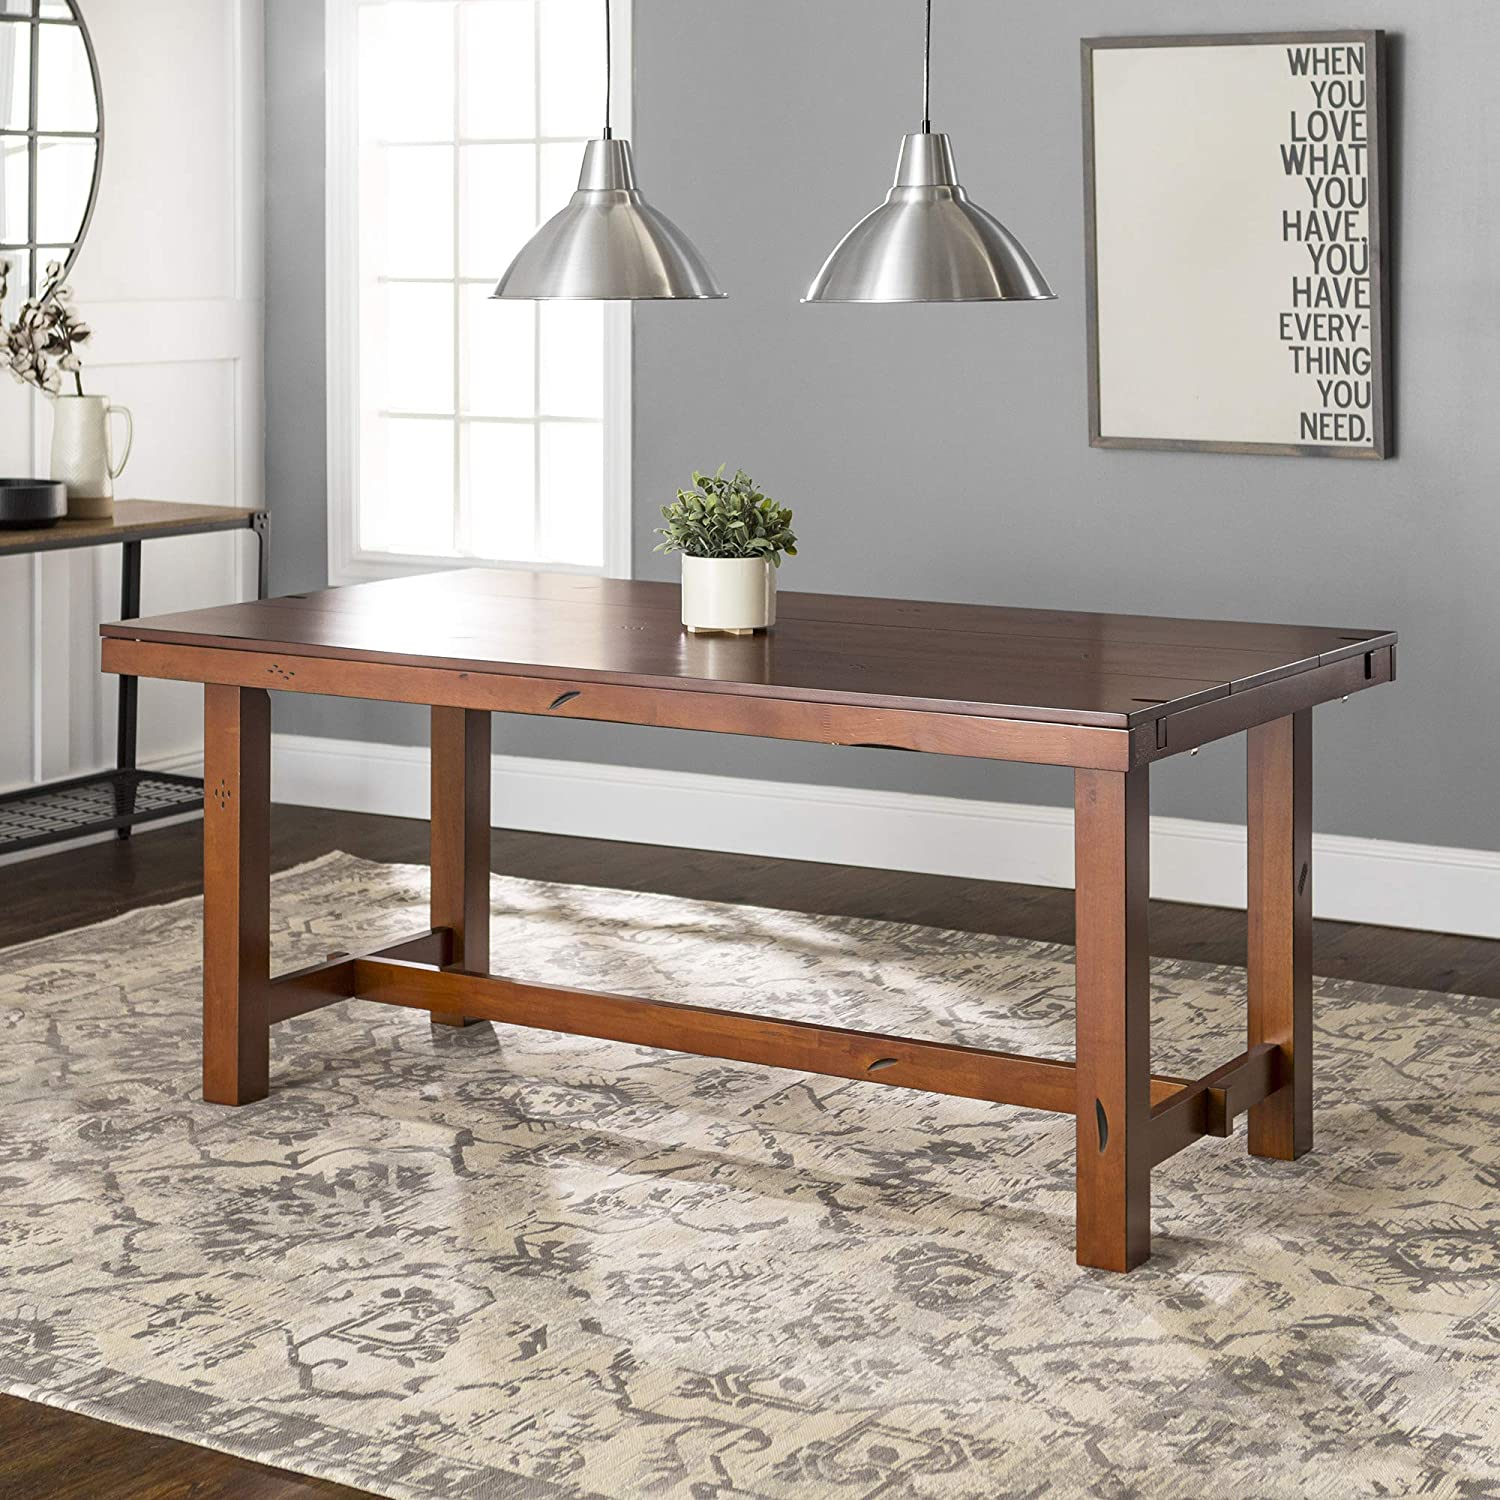 WE Furniture Rustic Farmhouse Wood Distressed Dining Room Table with Expandable Leaf, Oak Brown